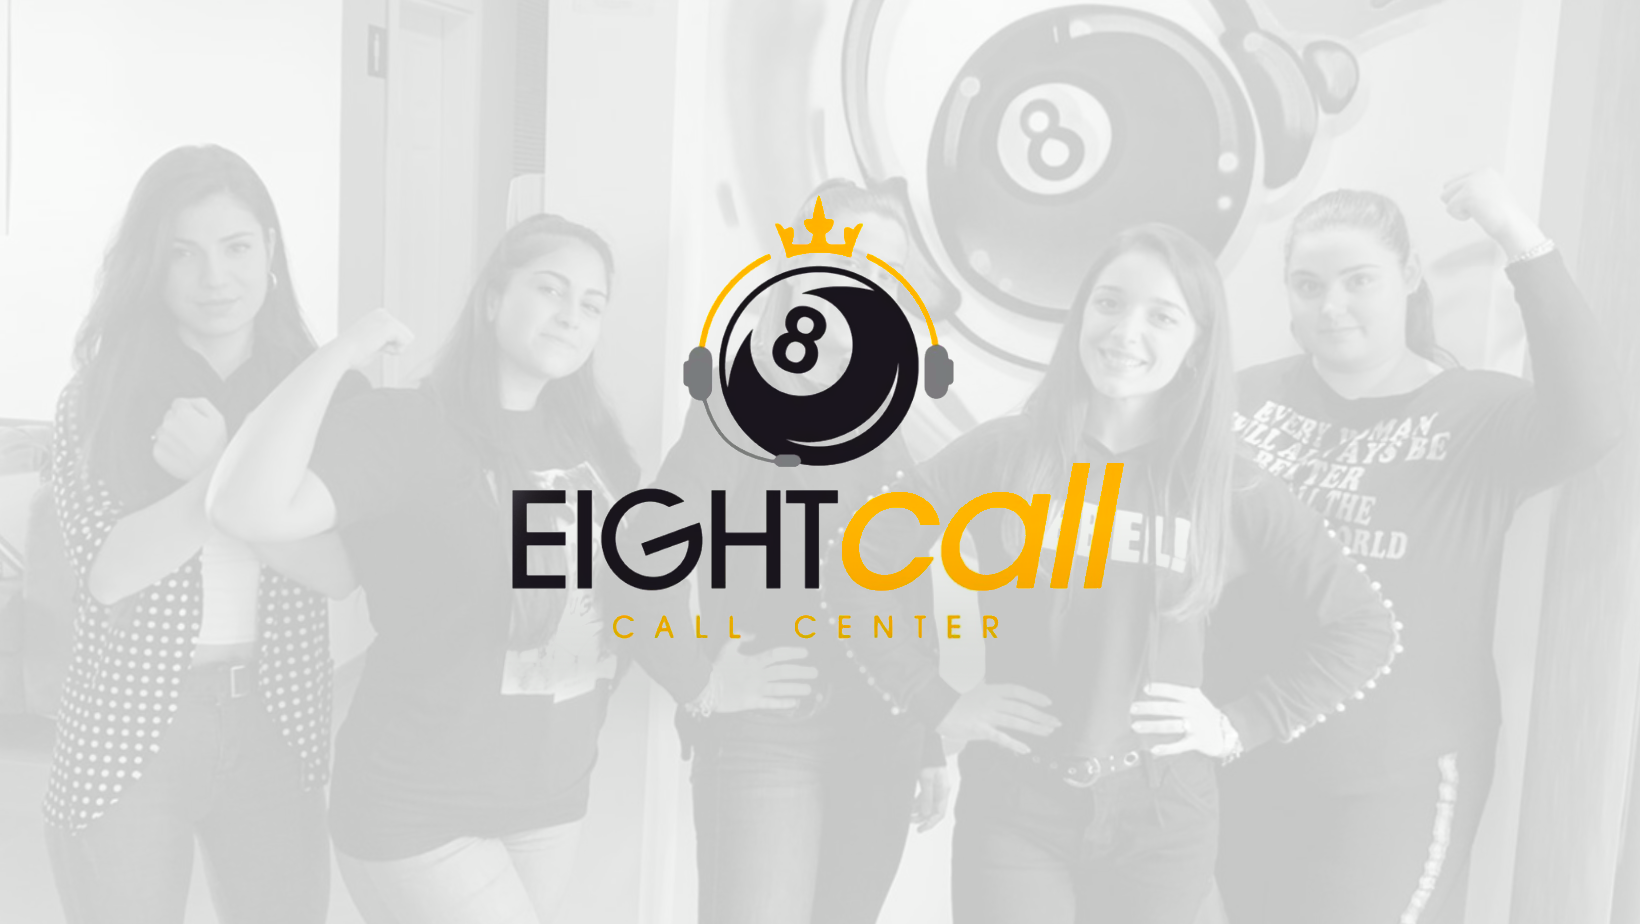 Eight call